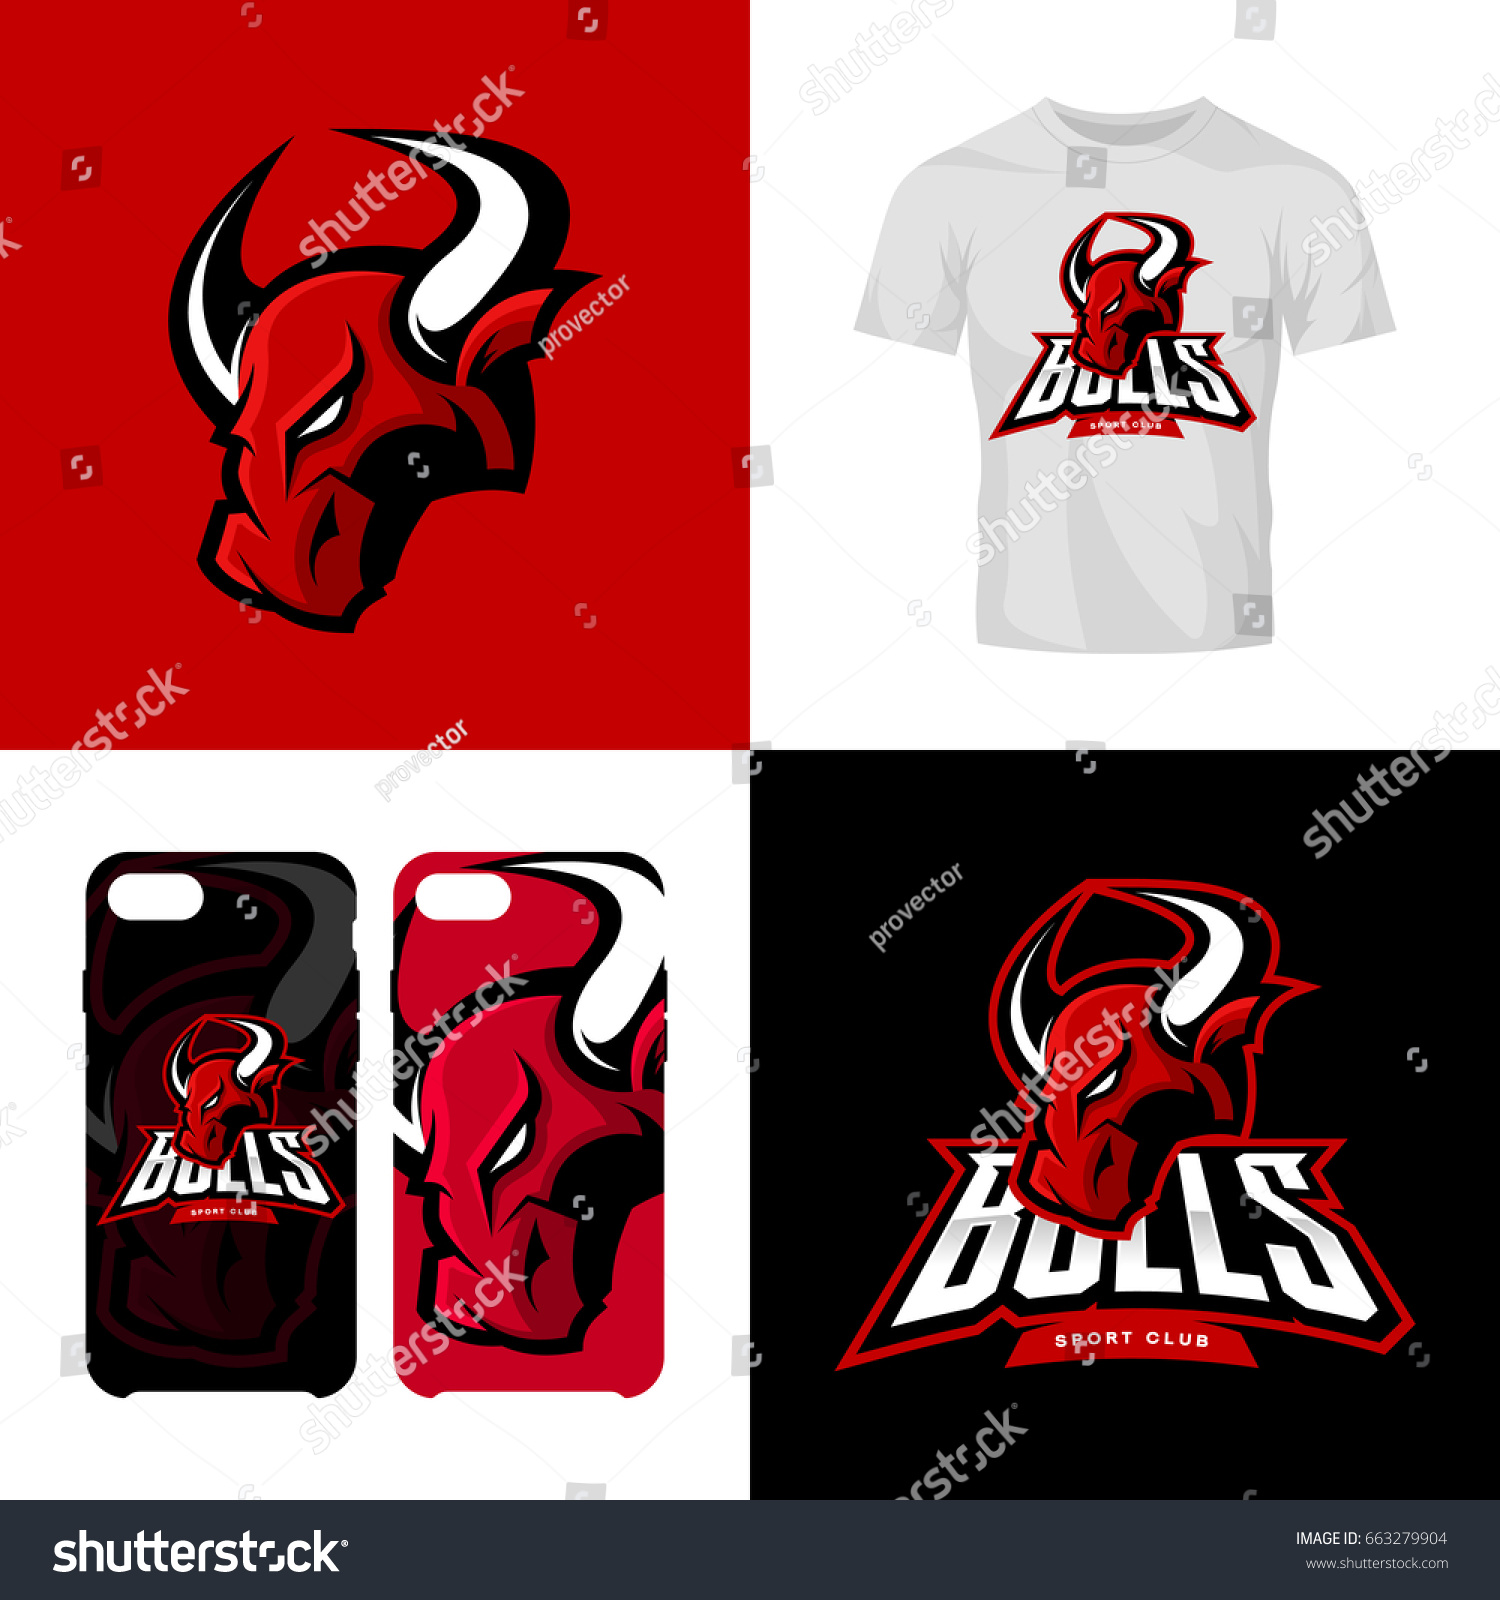 3893ad6b Modern professional team badge mascot design. Premium quality wild animal t-shirt  tee print illustration. Smart phone case accessory emblem.